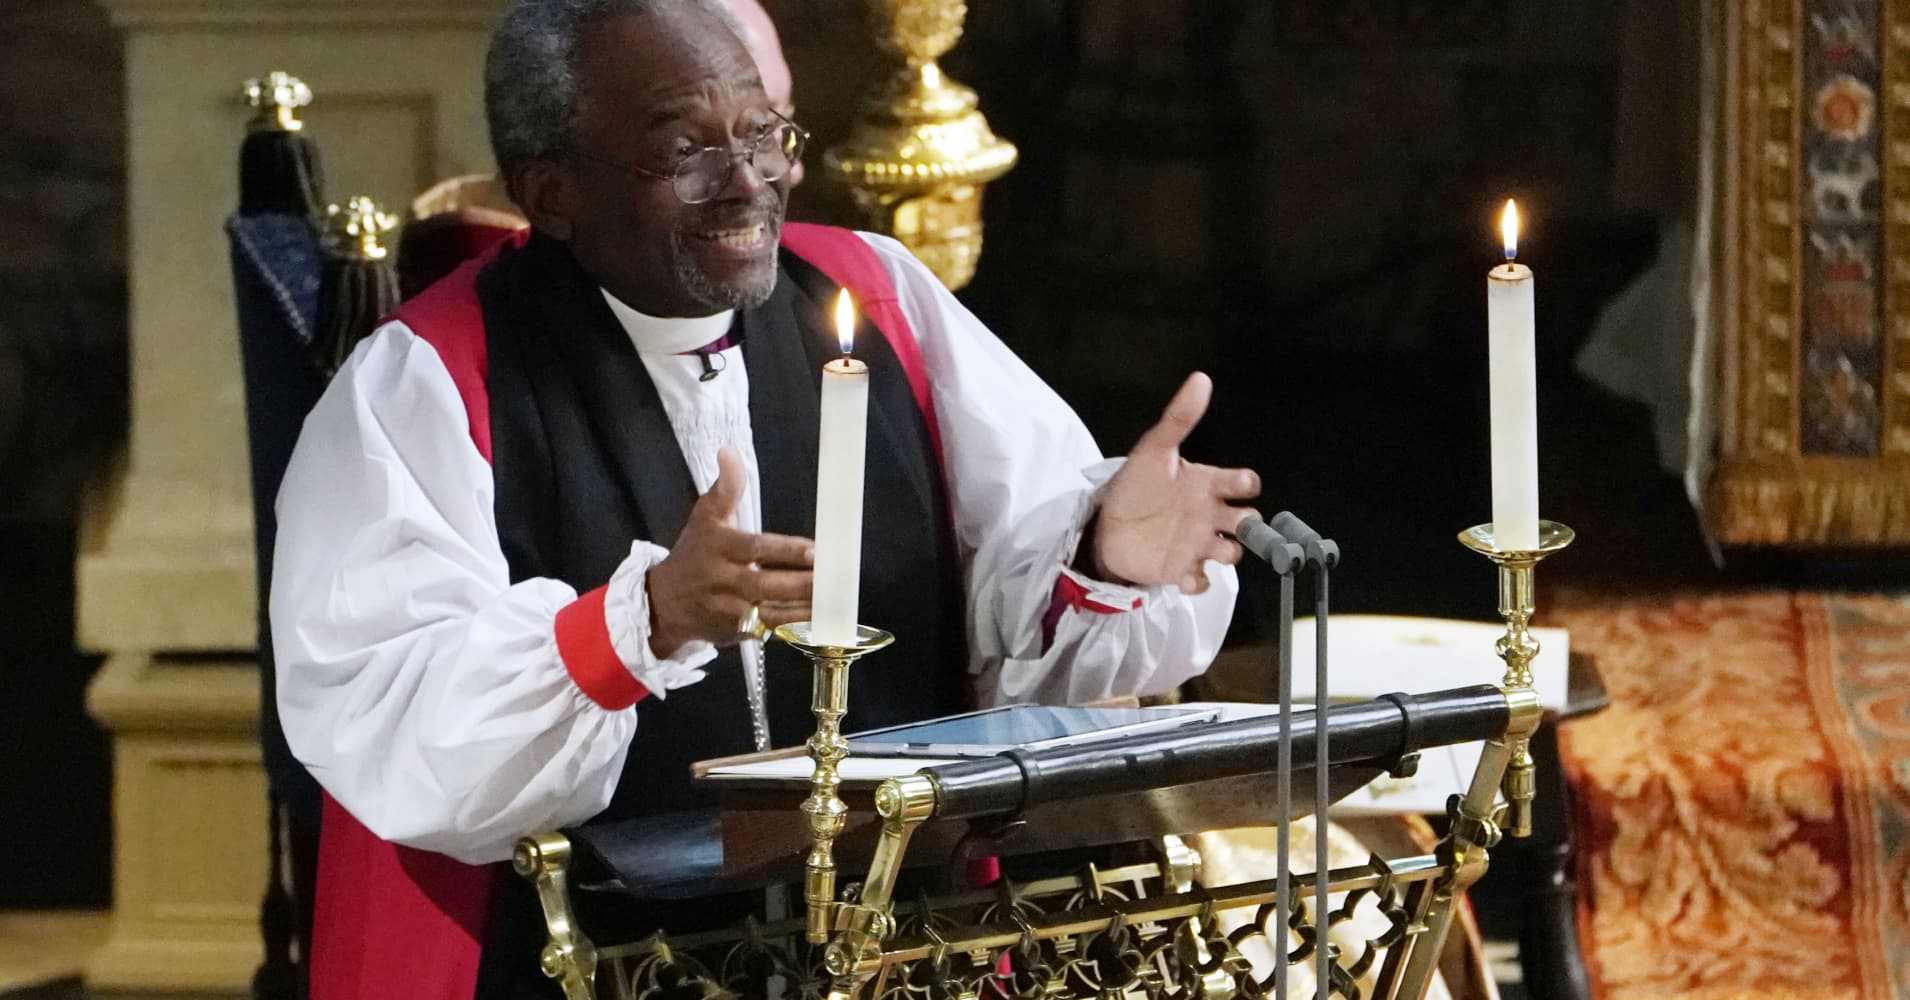 'The Power of Love': address by US bishop at Prince Harry and Meghan Markle's royal wedding